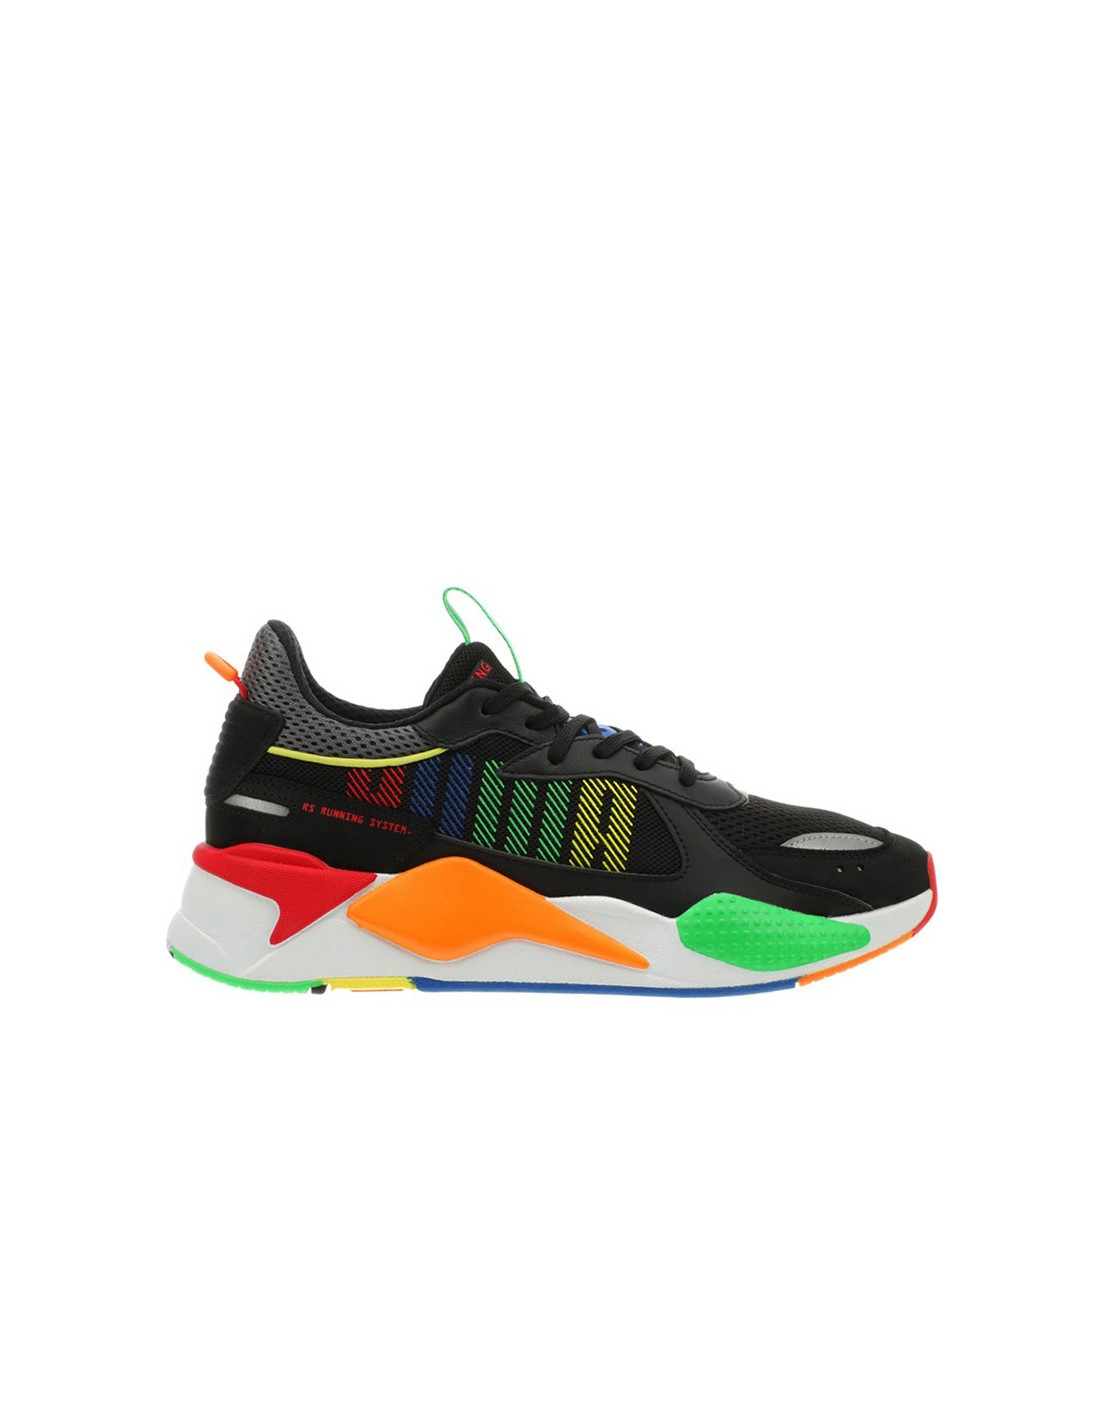 nouvelle arrivee 23359 4ae21 Puma - Sneakers RS-X BOLD